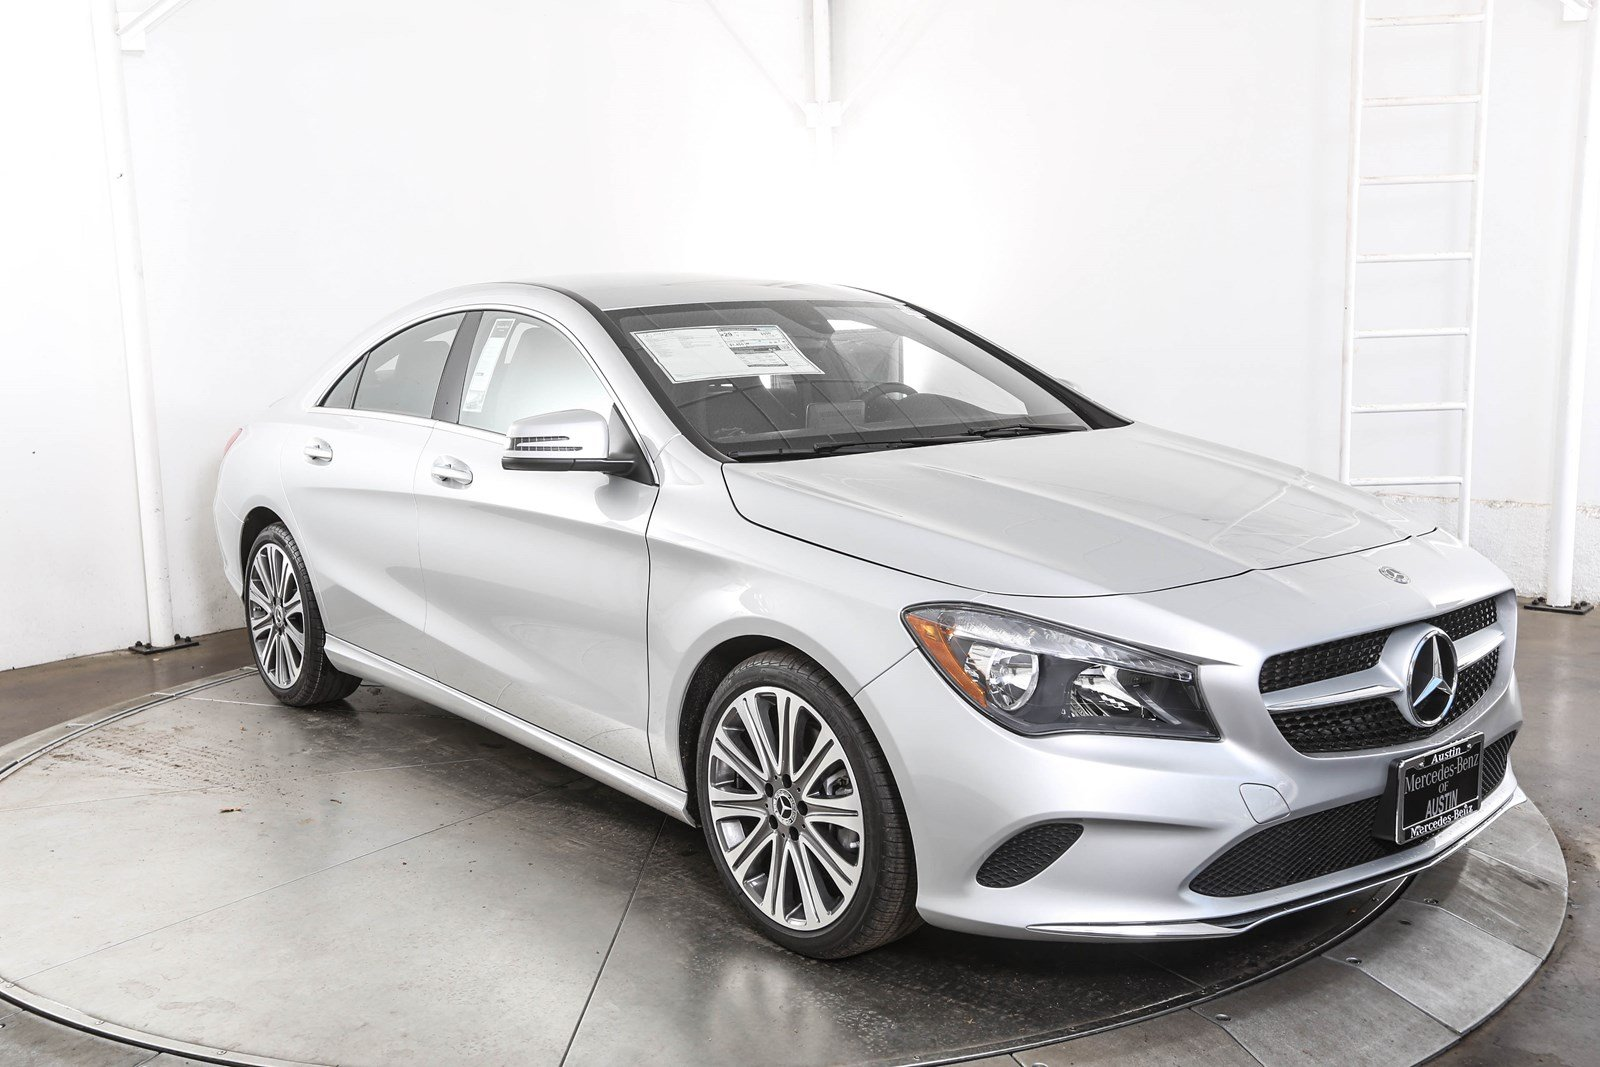 New 2018 mercedes benz cla cla 250 coupe in austin m58427 for Mercedes benz cla 250 msrp